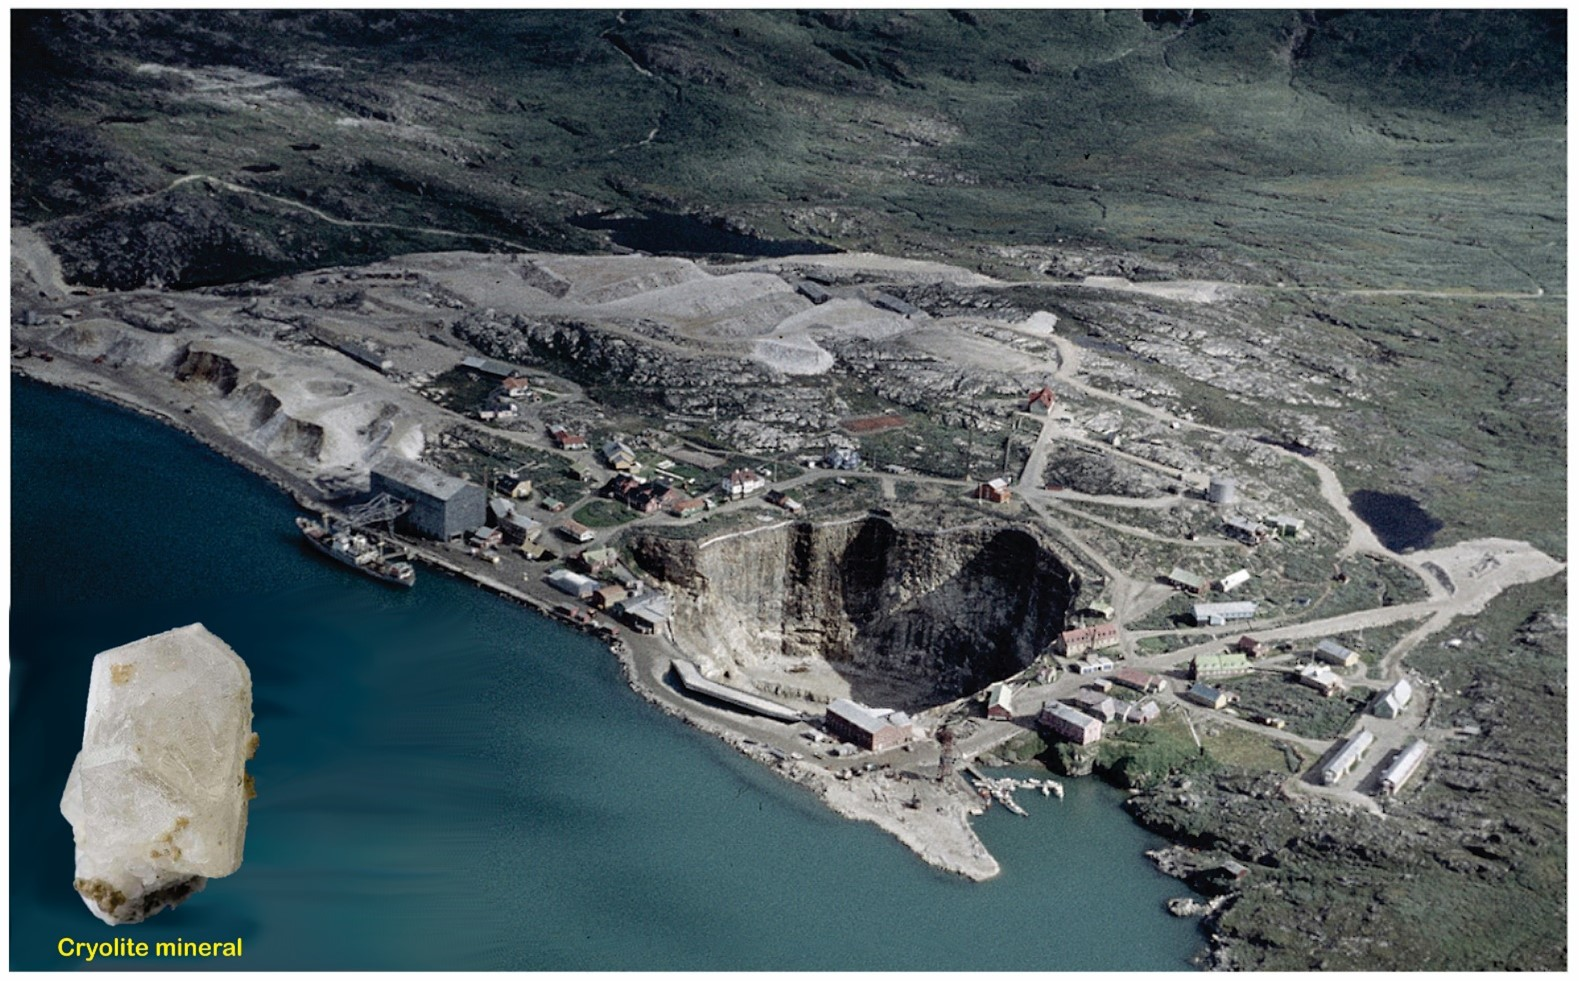 Cryolite Mine